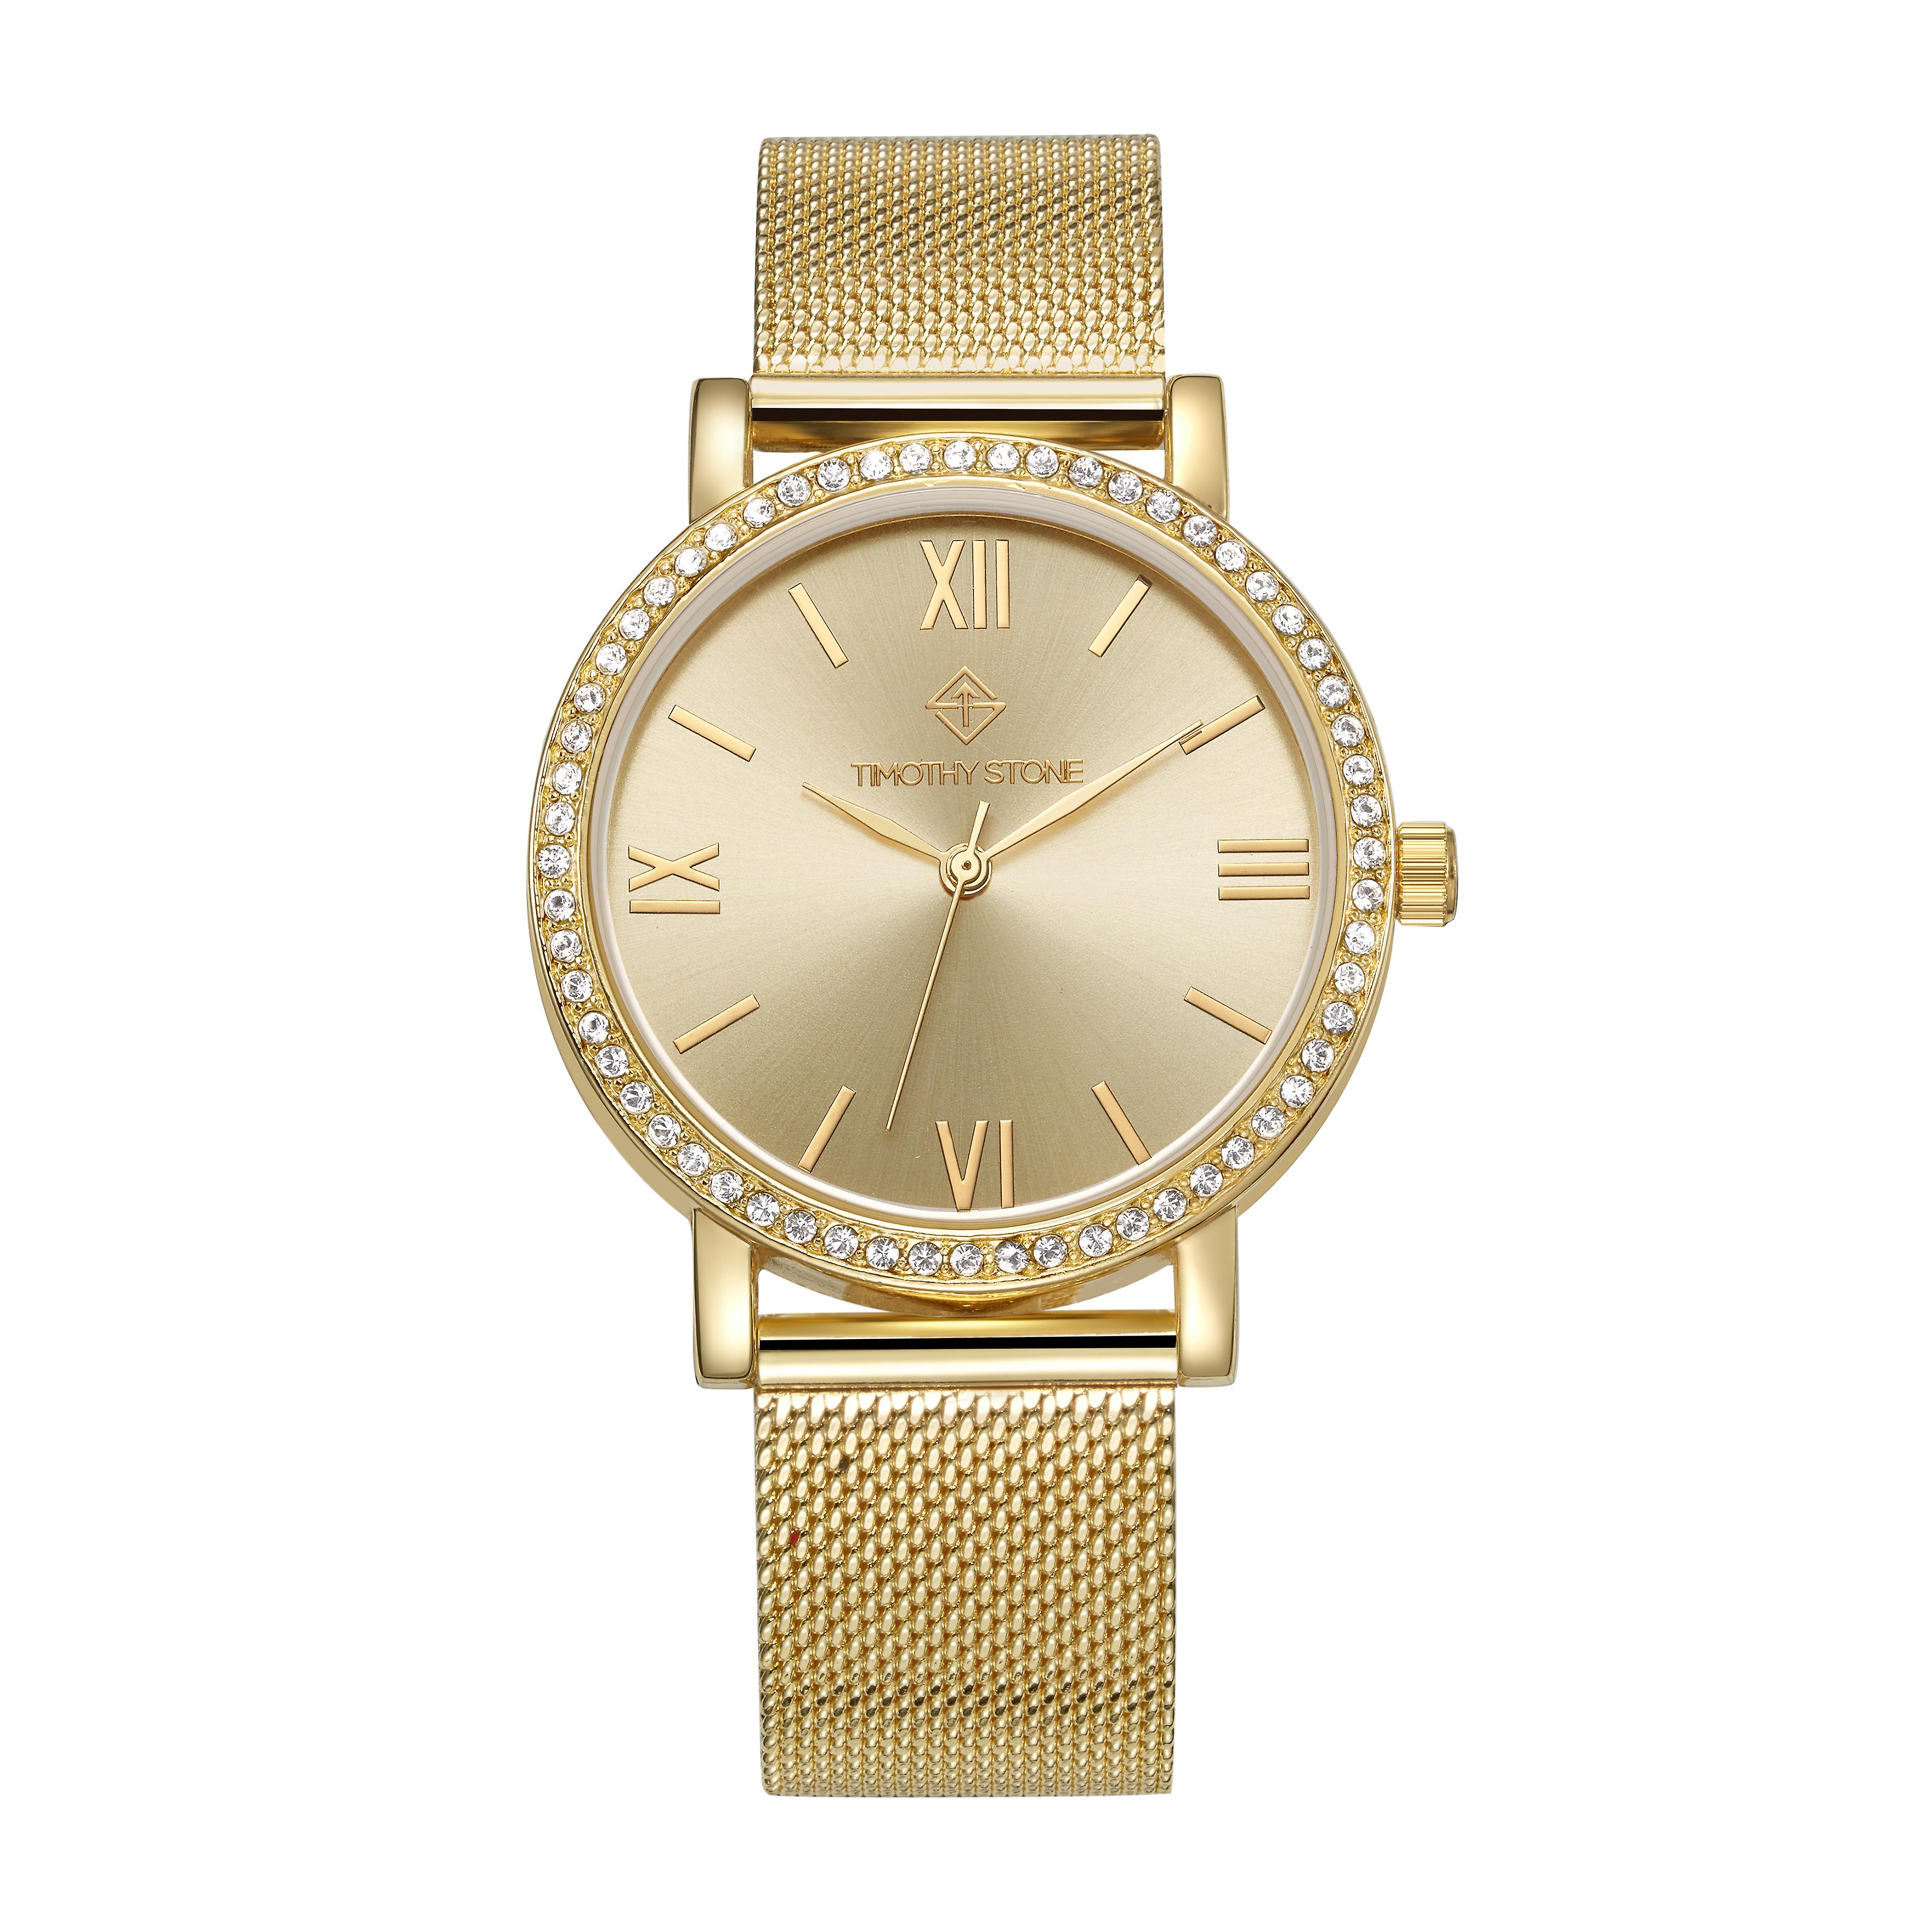 Timothy Stone Women�s INDIO Gold Watch